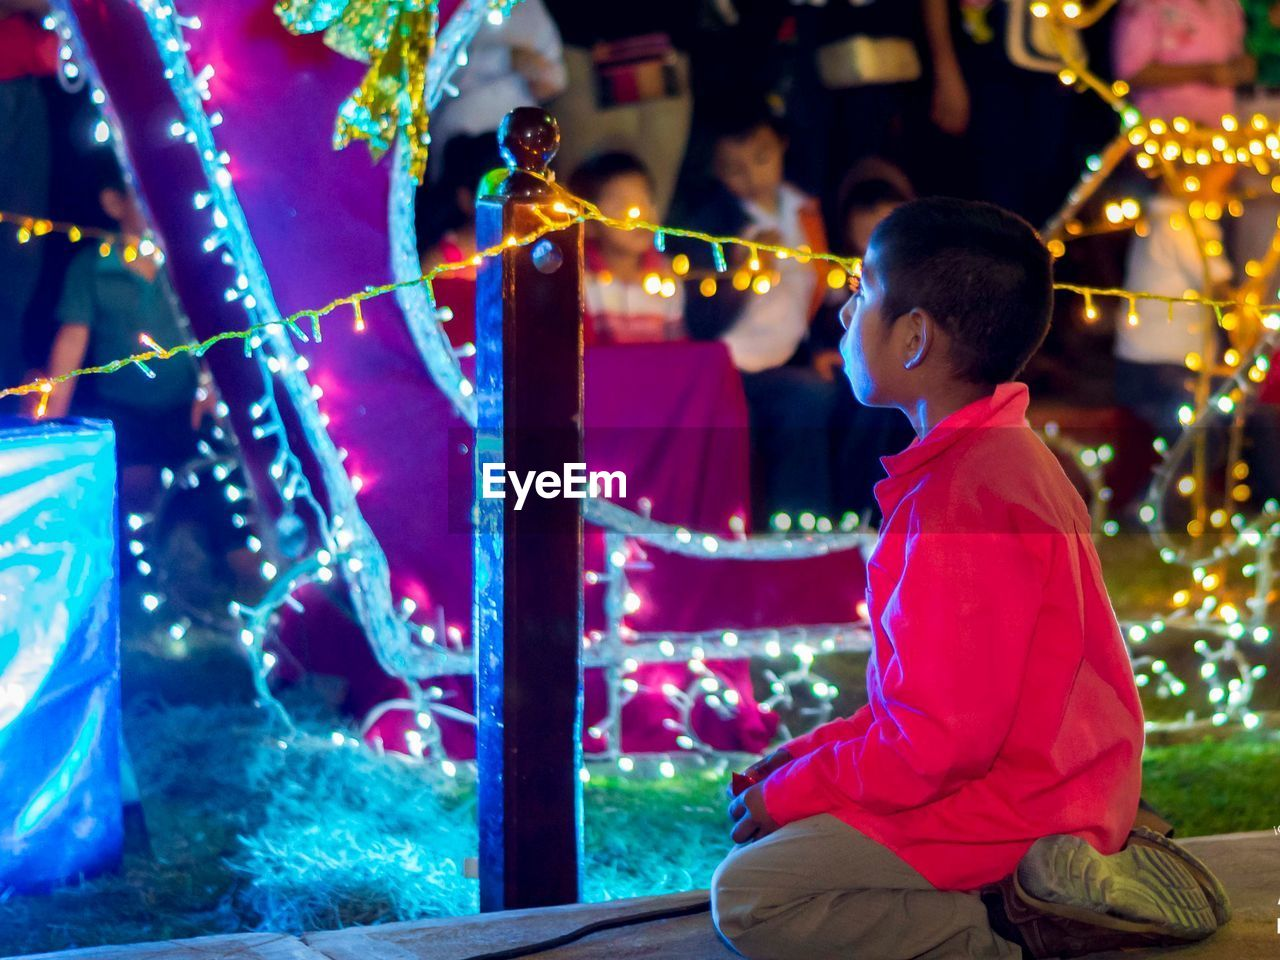 decoration, night, real people, illuminated, three quarter length, one person, lifestyles, sitting, lighting equipment, leisure activity, focus on foreground, celebration, side view, casual clothing, christmas, men, electric light, christmas decoration, adult, light